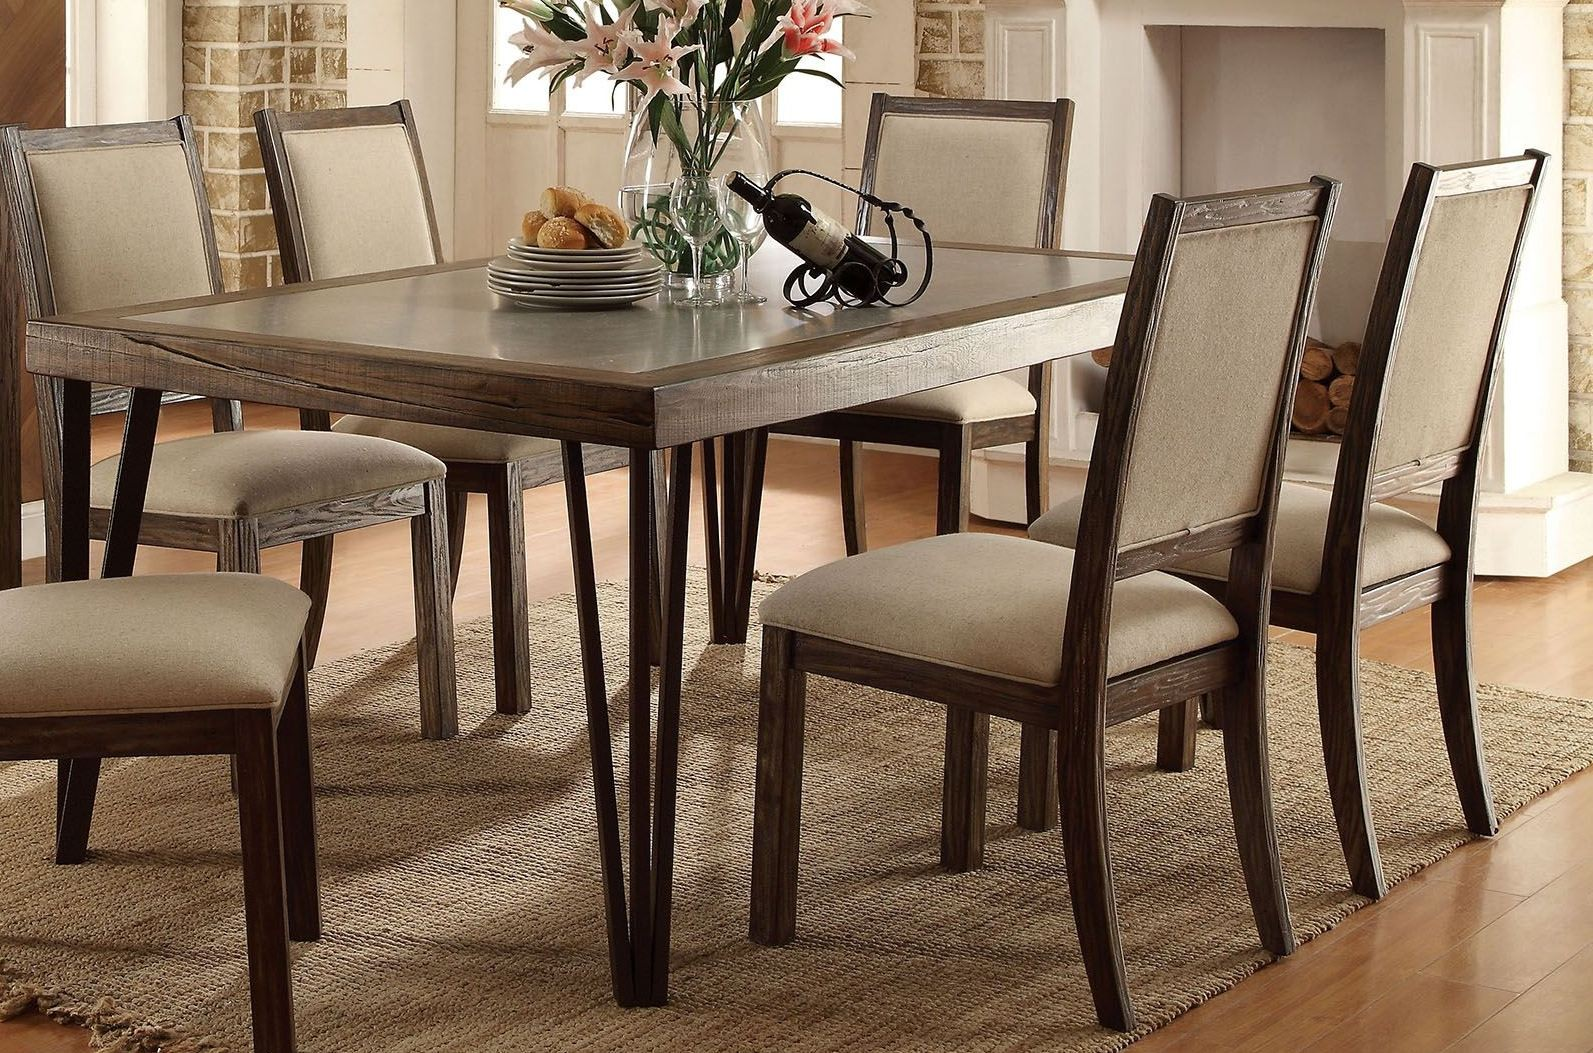 Caithe rustic oak rectangular dining table from furniture of america coleman furniture - Rectangular dining table for 6 ...